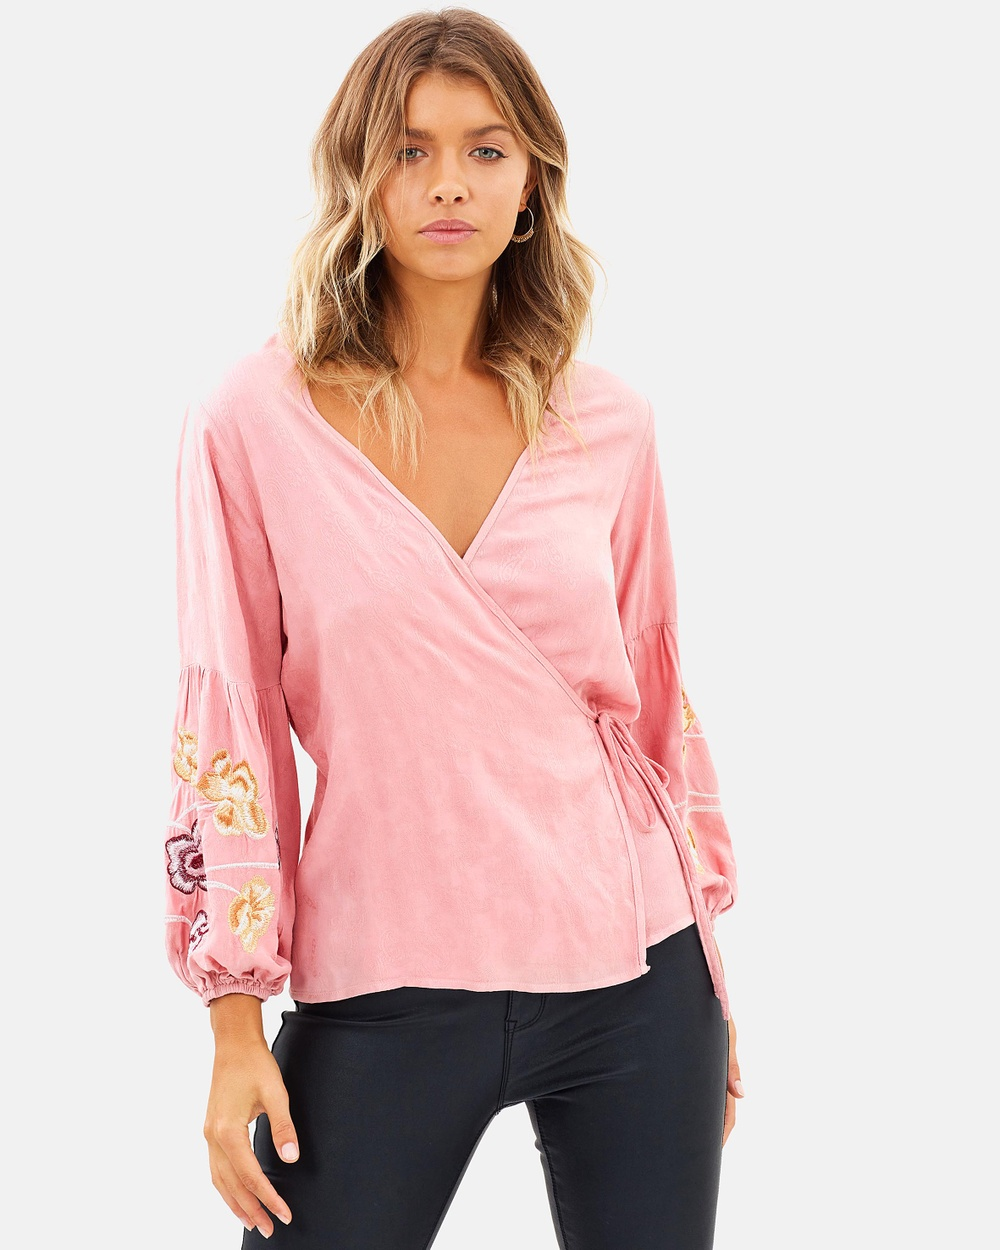 Atmos & Here ICONIC EXCLUSIVE Alix Embroidered Sleeve Wrap Top Tops Soft Pink ICONIC EXCLUSIVE Alix Embroidered Sleeve Wrap Top